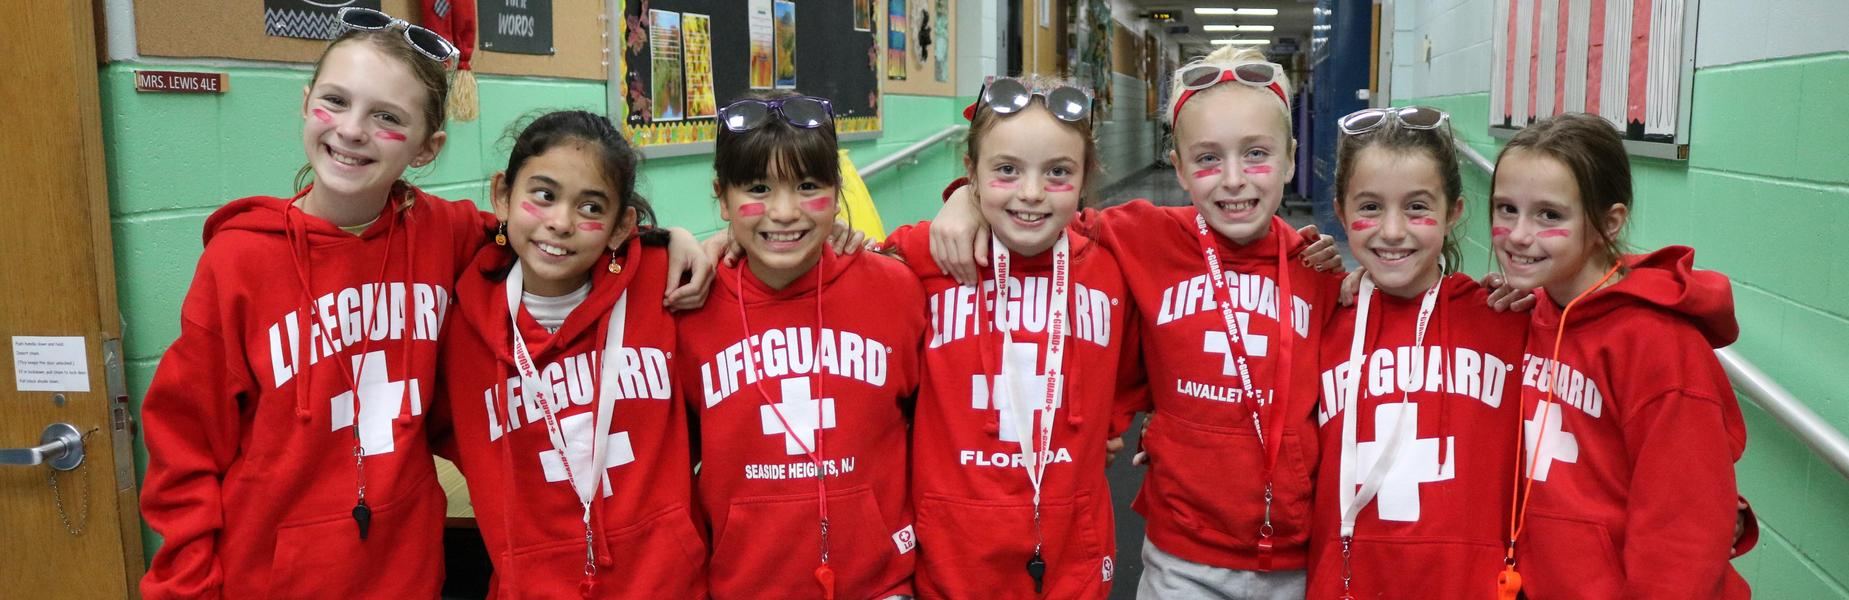 Photo of a group of Washington 5th grade girls dressed as lifeguards for Halloween.